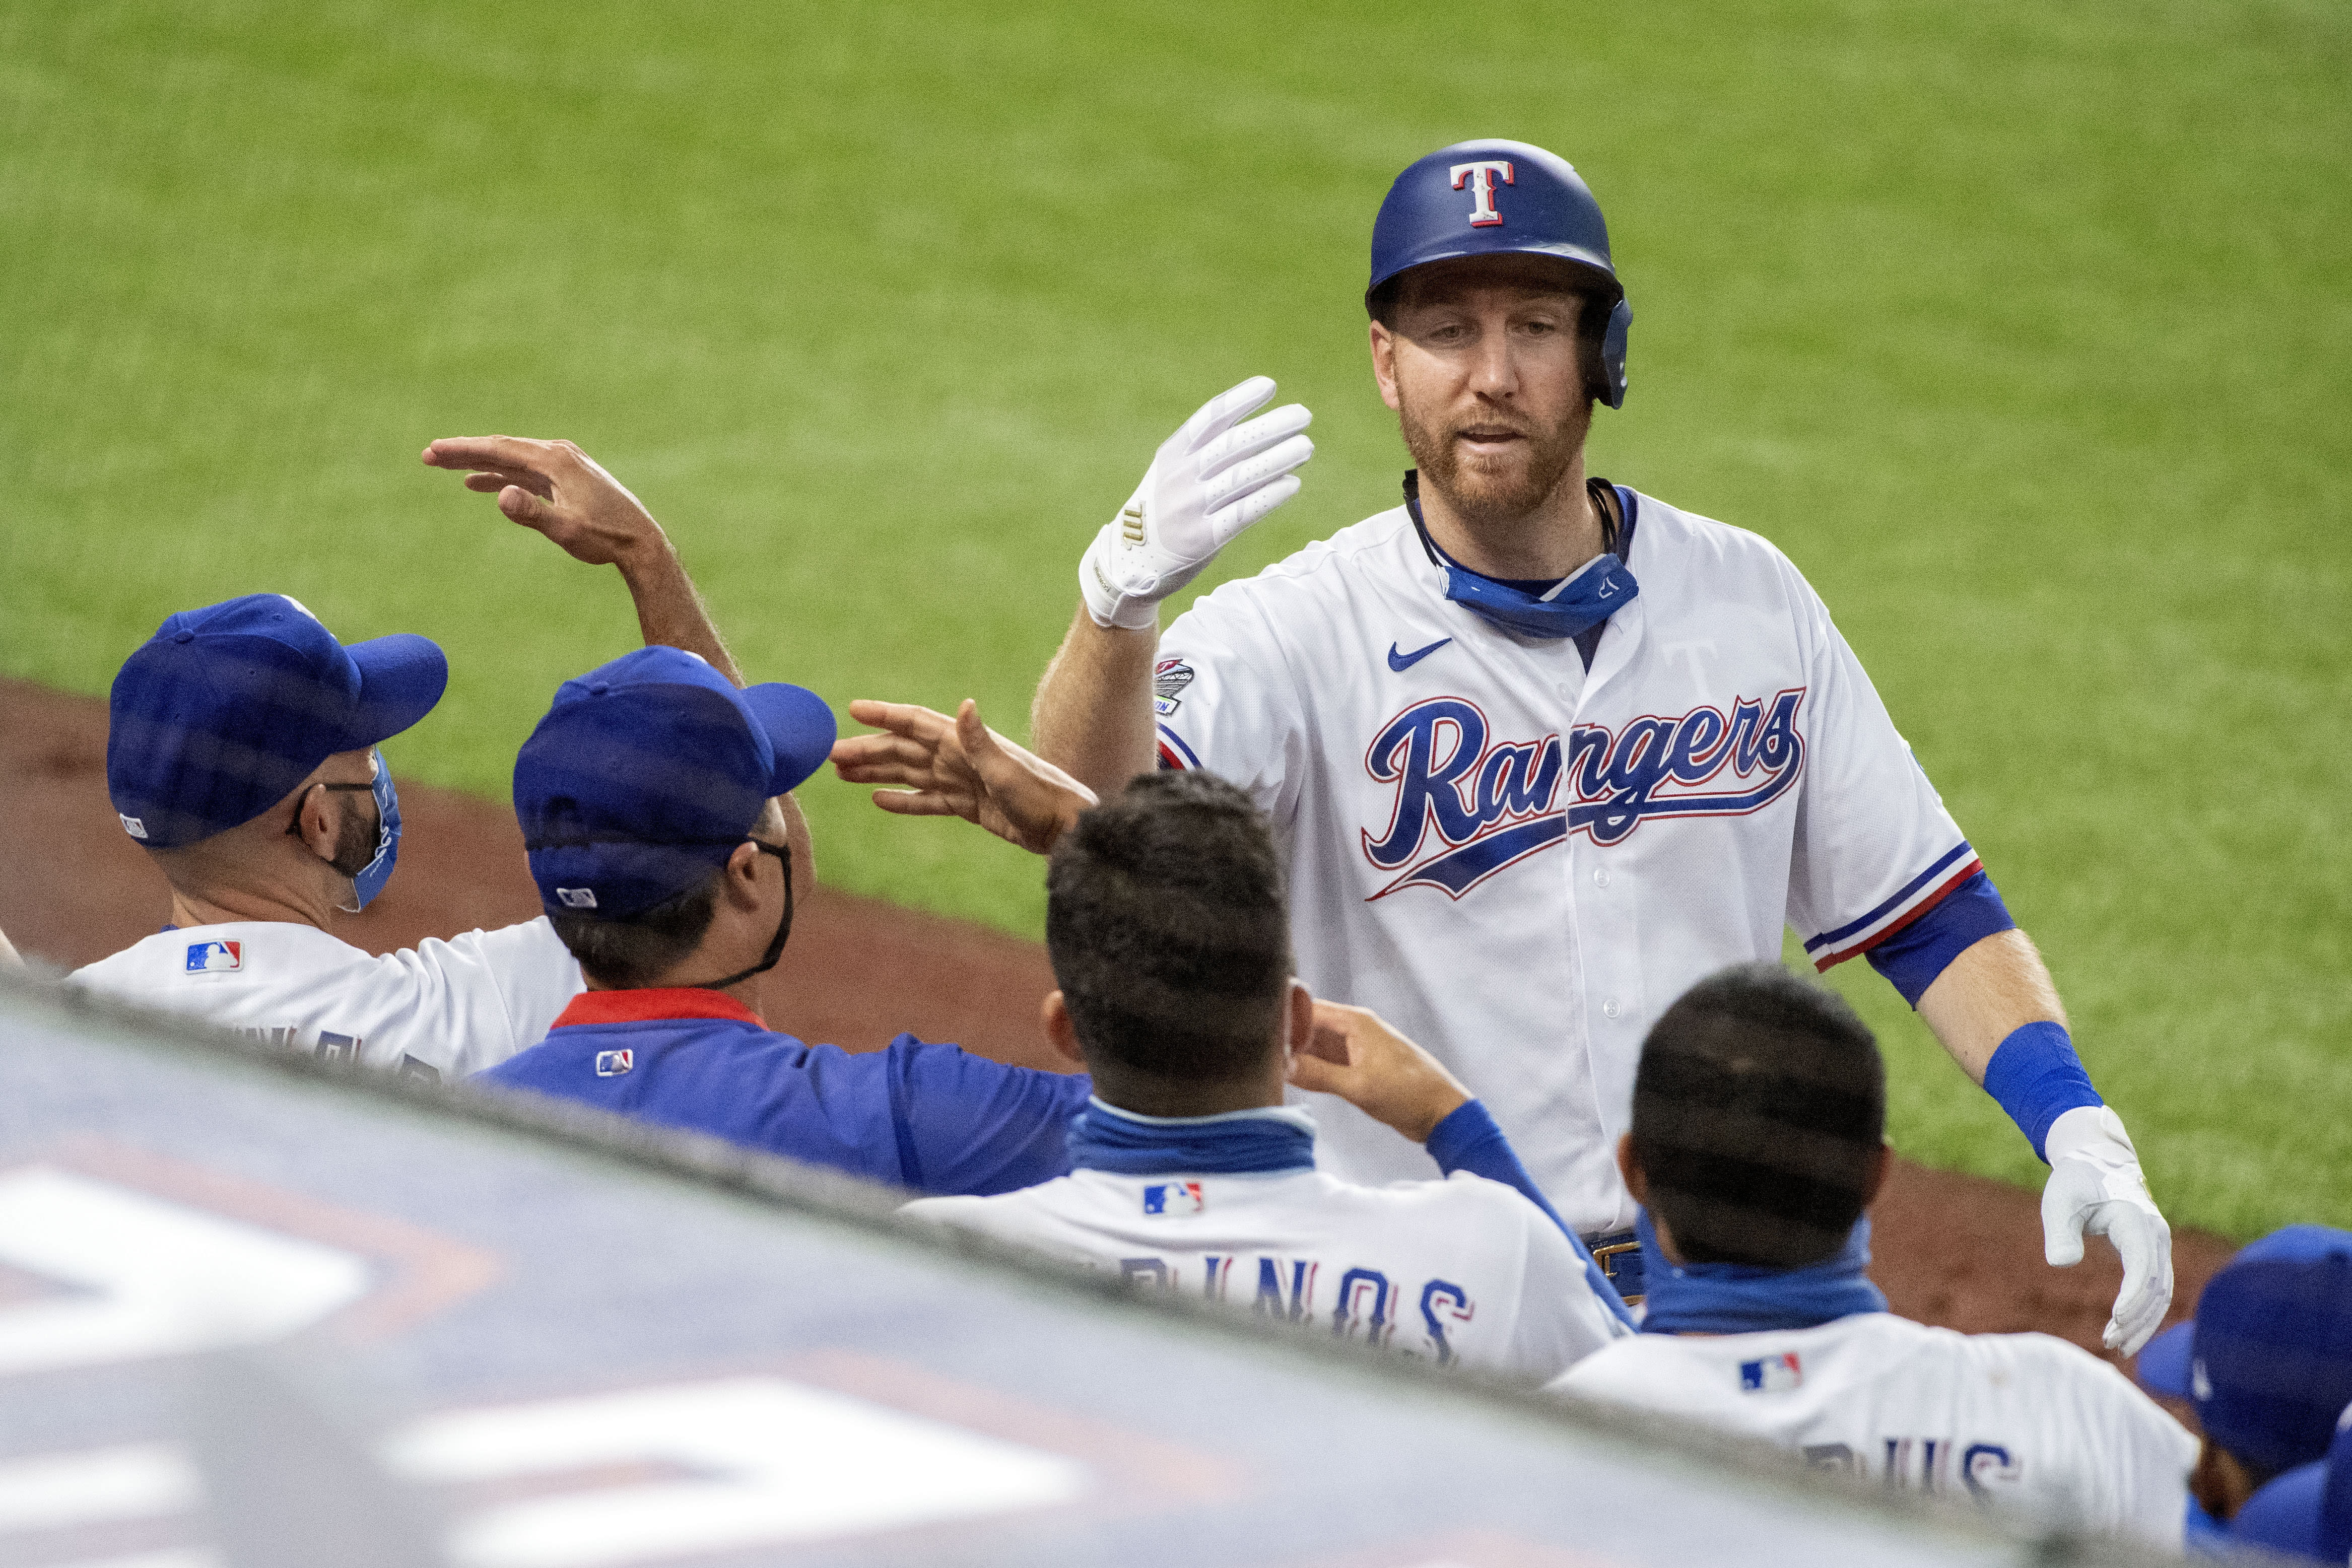 Texas Rangers' Todd Frazier celebrates with teammates after his solo home run off of Arizona Diamondbacks starting pitcher Madison Bumgarner during the fourth inning of a baseball game Wednesday, July 29, 2020, in Arlington, Texas. (AP Photo/Jeffrey McWhorter)